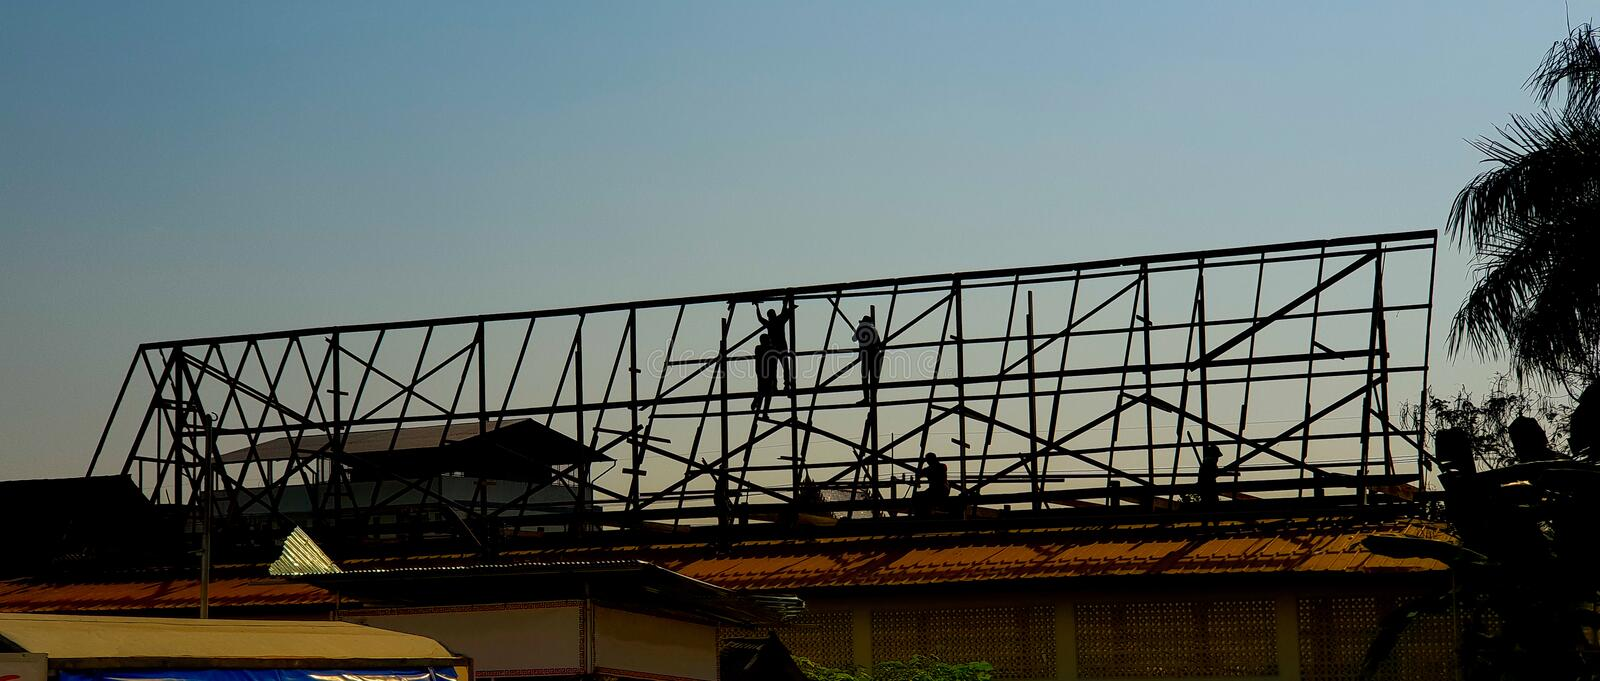 Silhouette workers for the roof building in construction site stock photography